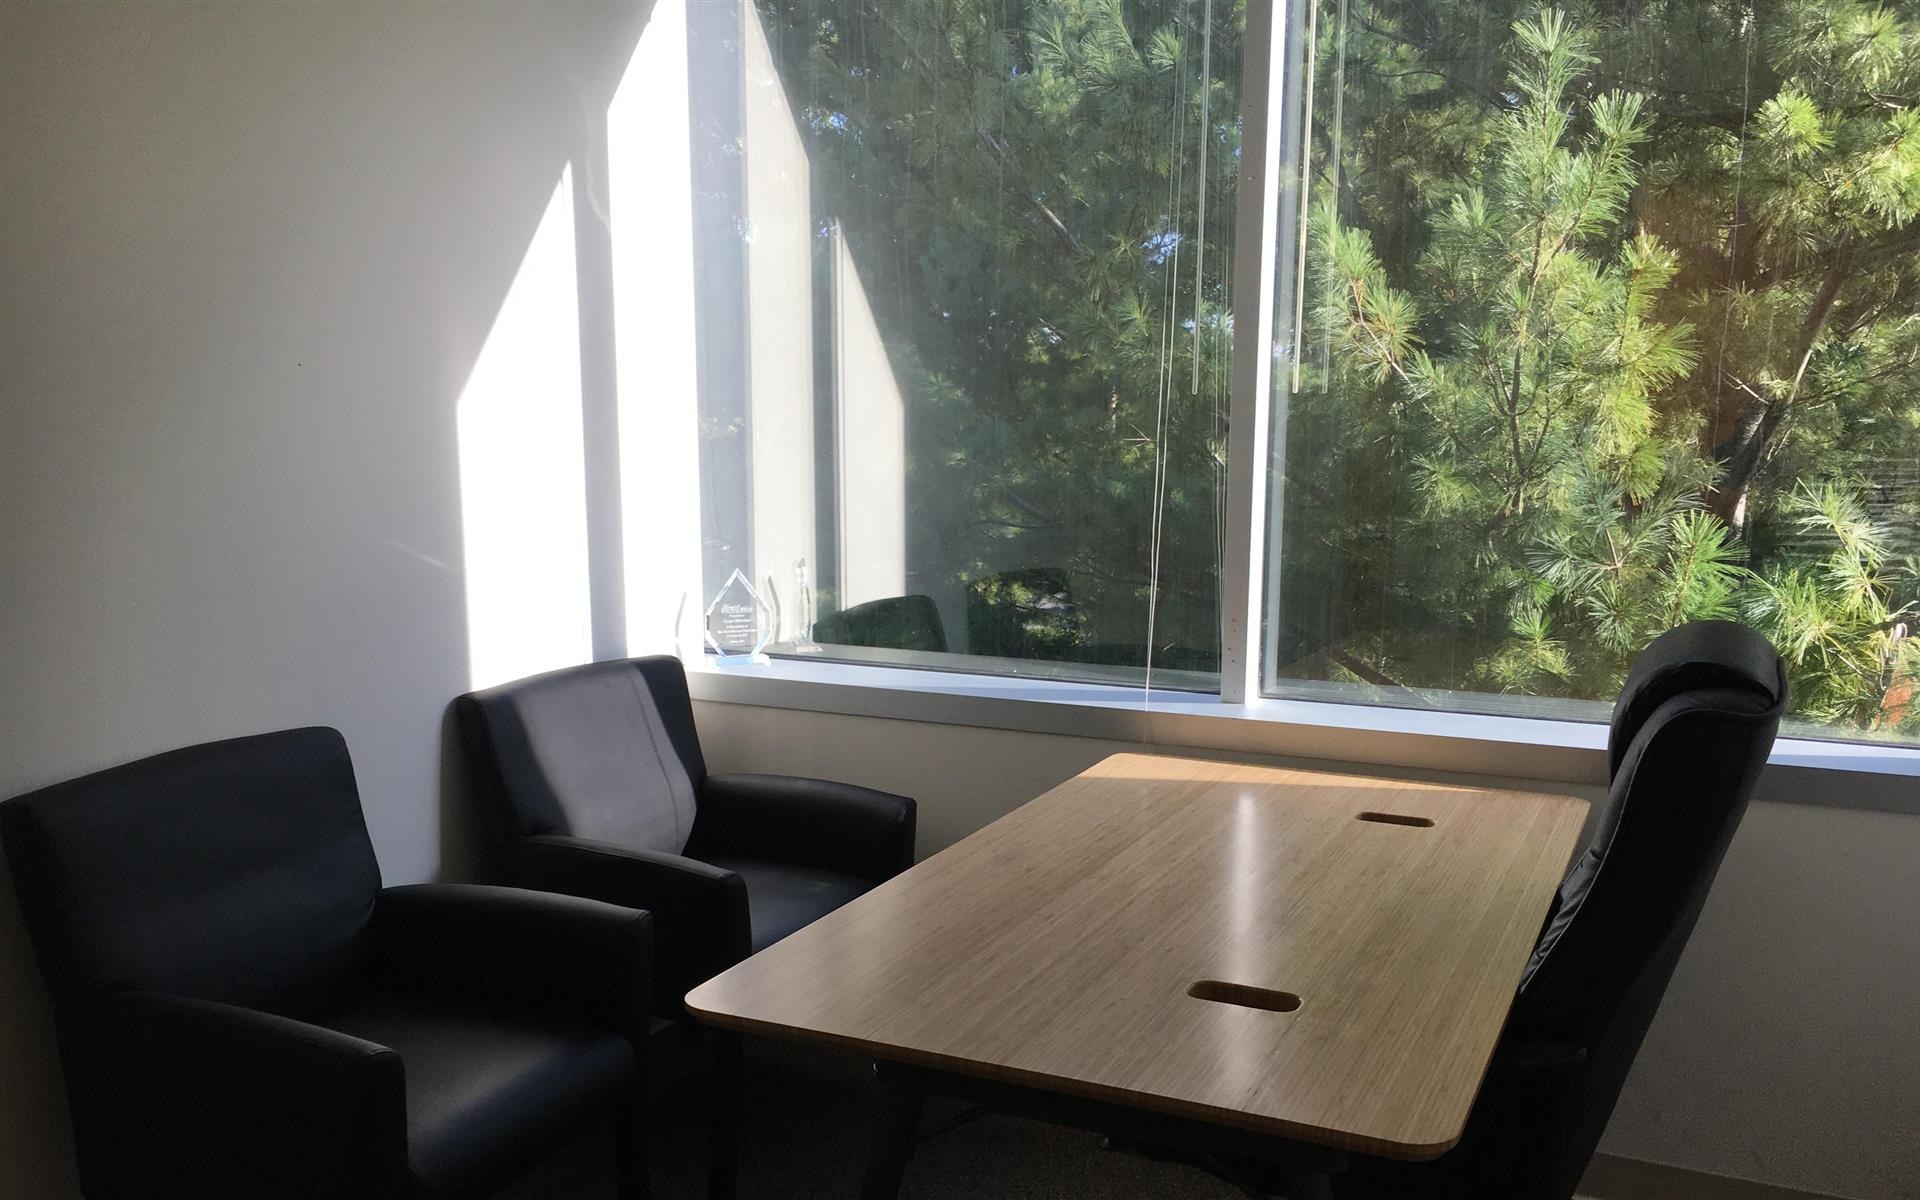 Comtech - Room with a View